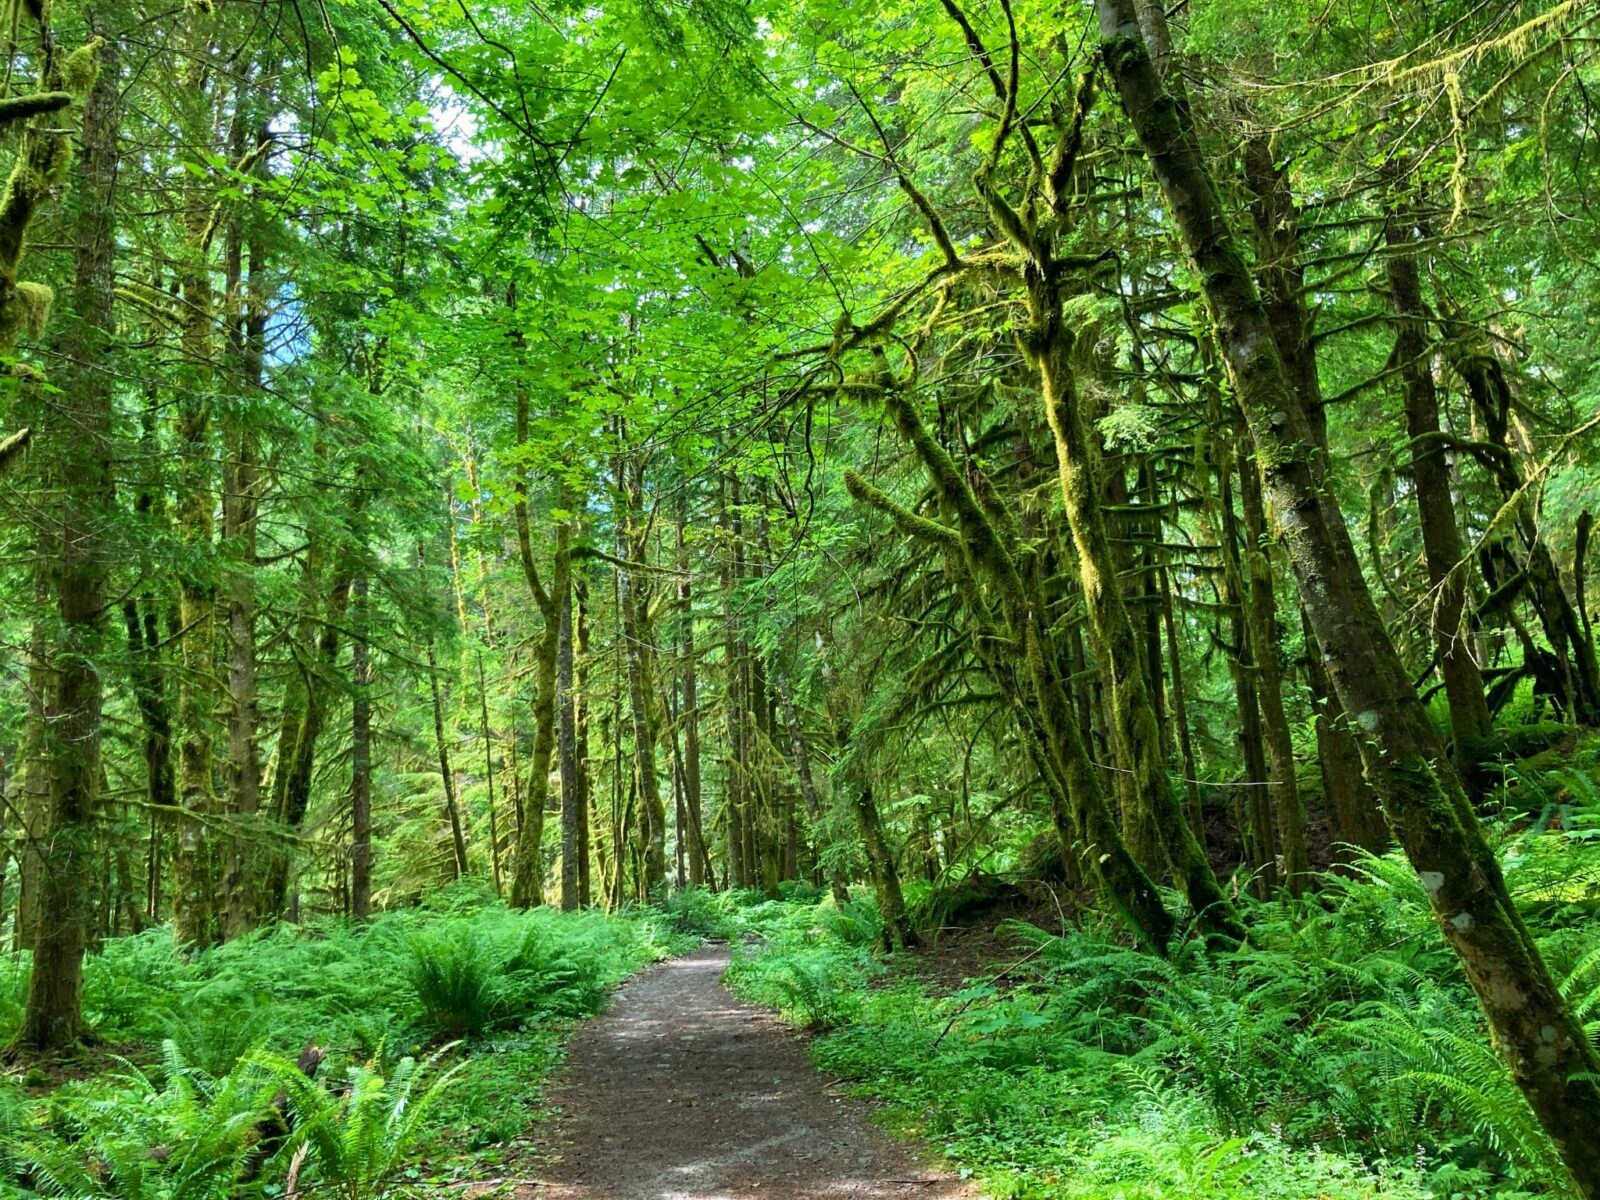 The Snoqualmie Lake trail to Otter Falls is mostly wide and flat. The trail passes through a green forest with ferns in the undergrowth